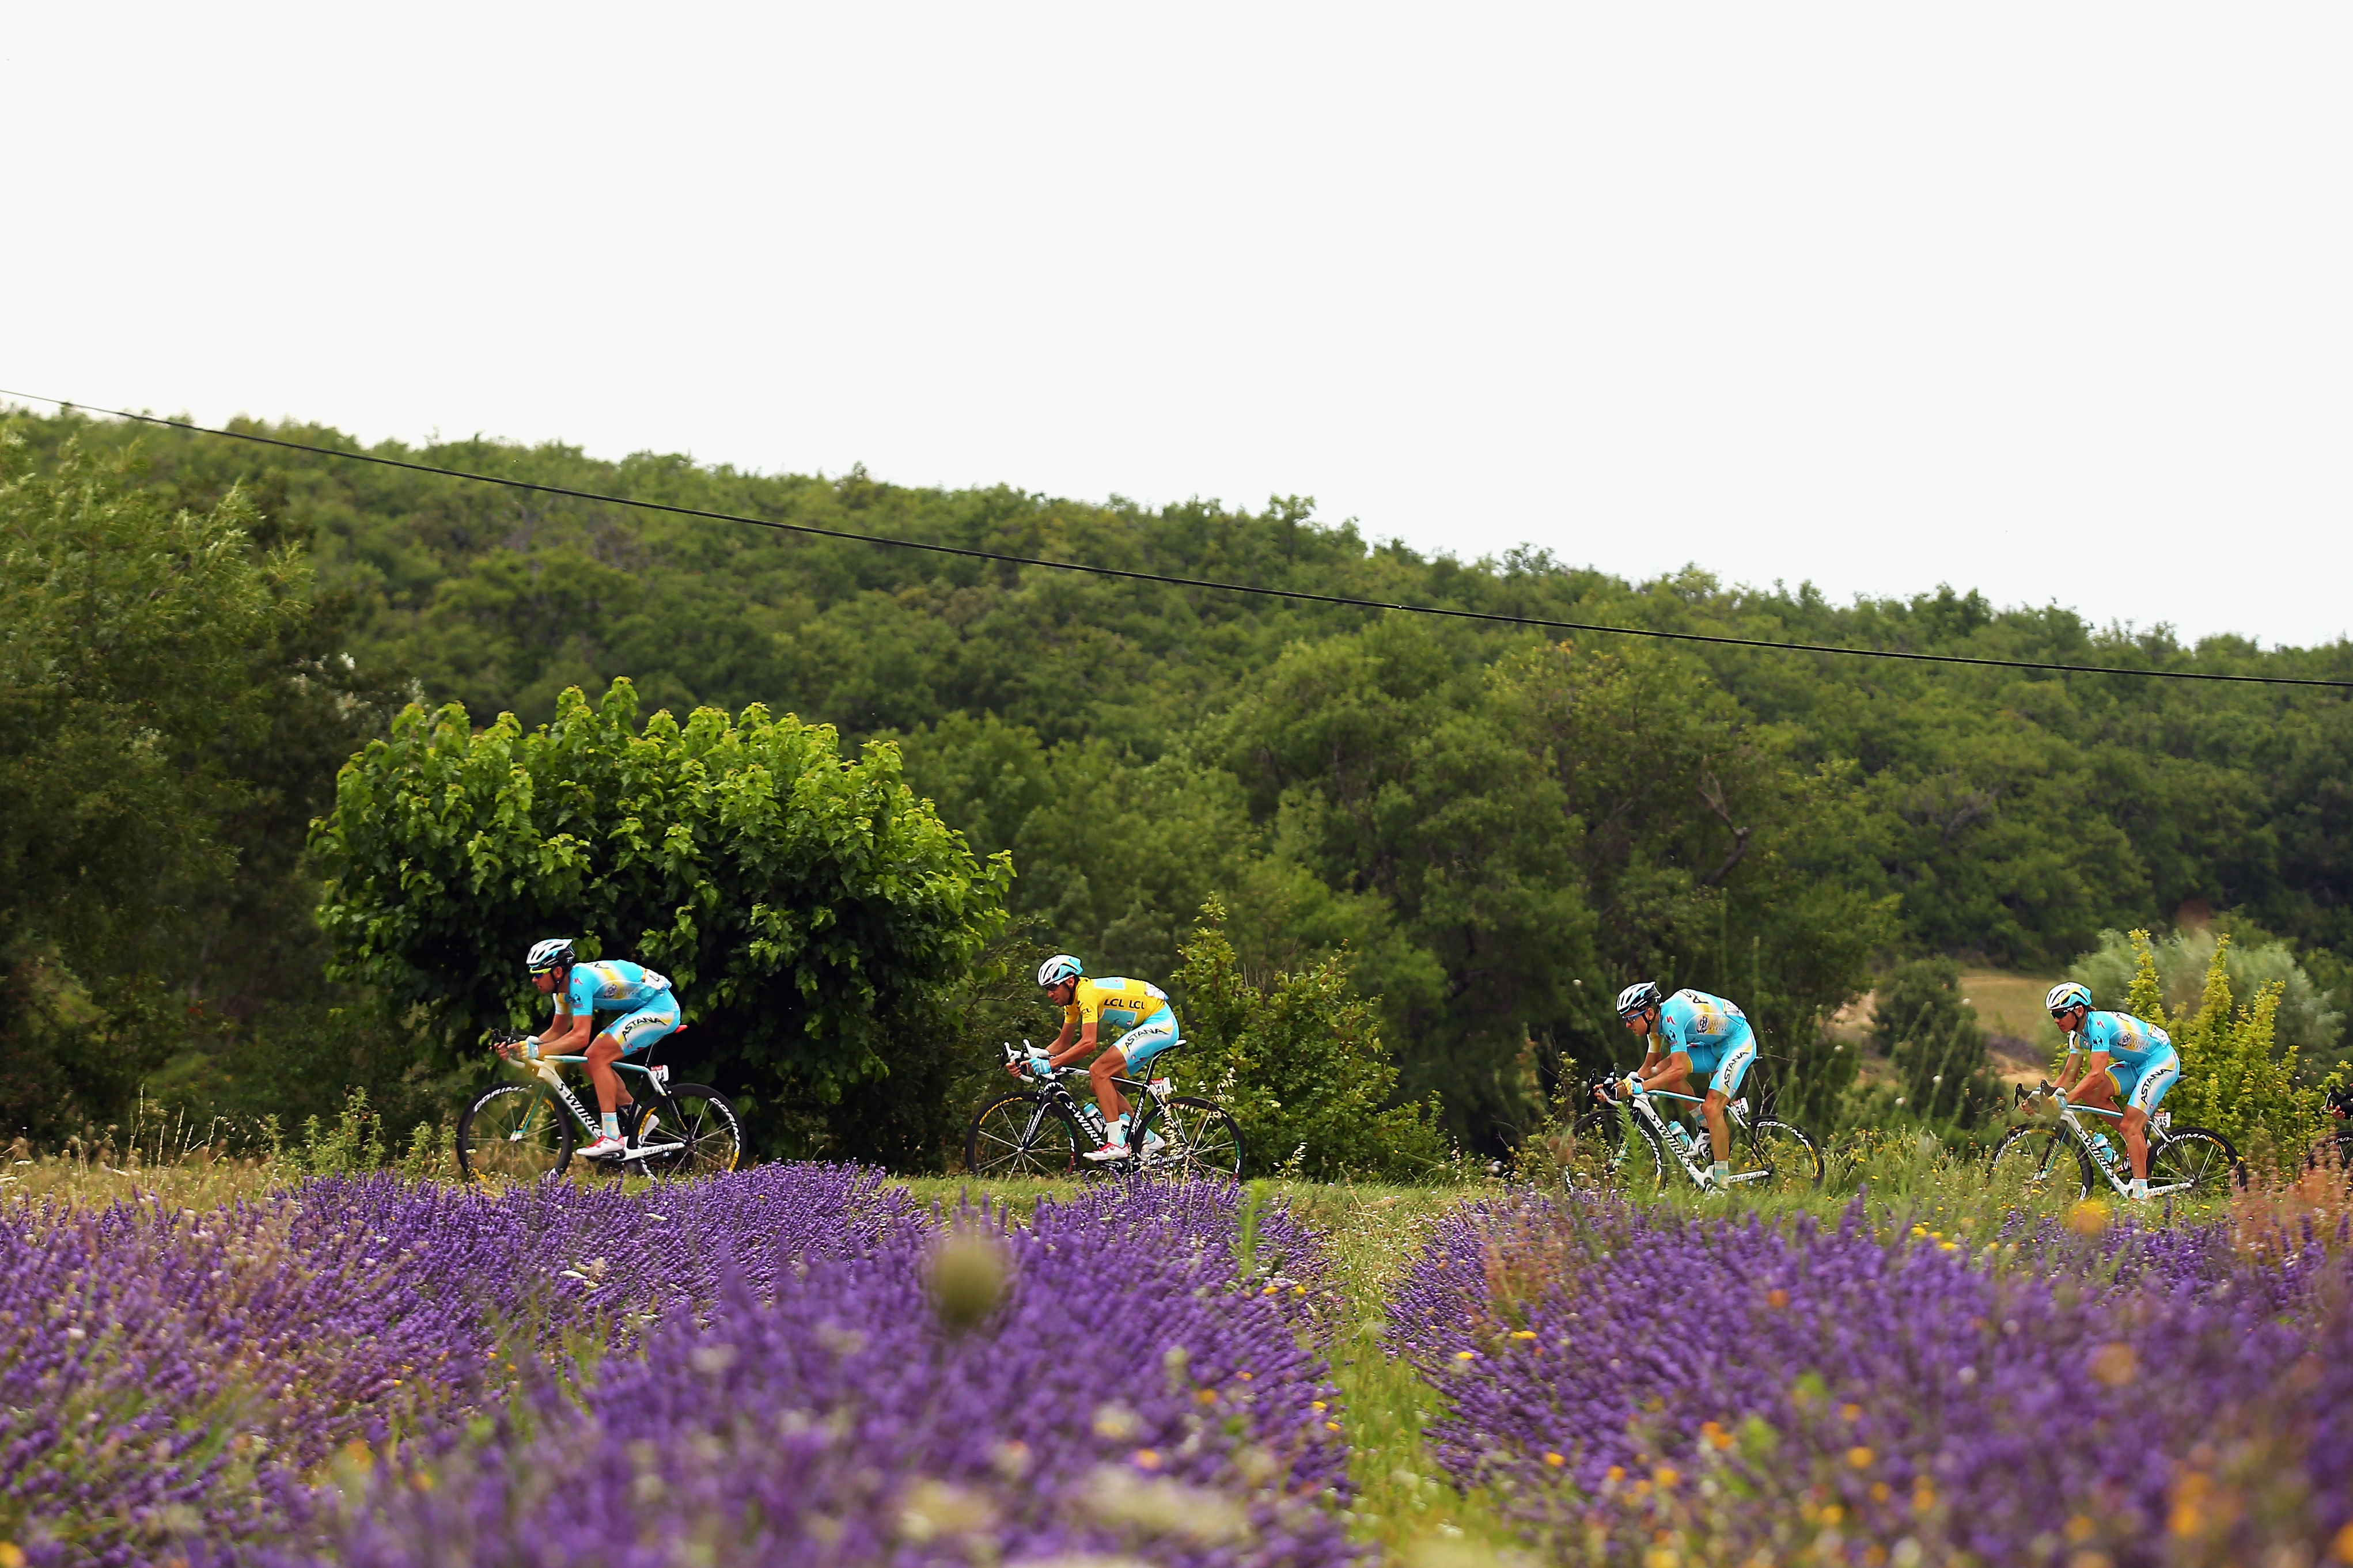 Race leader Vincenzo Nibali of Italy rides through the French countryside.